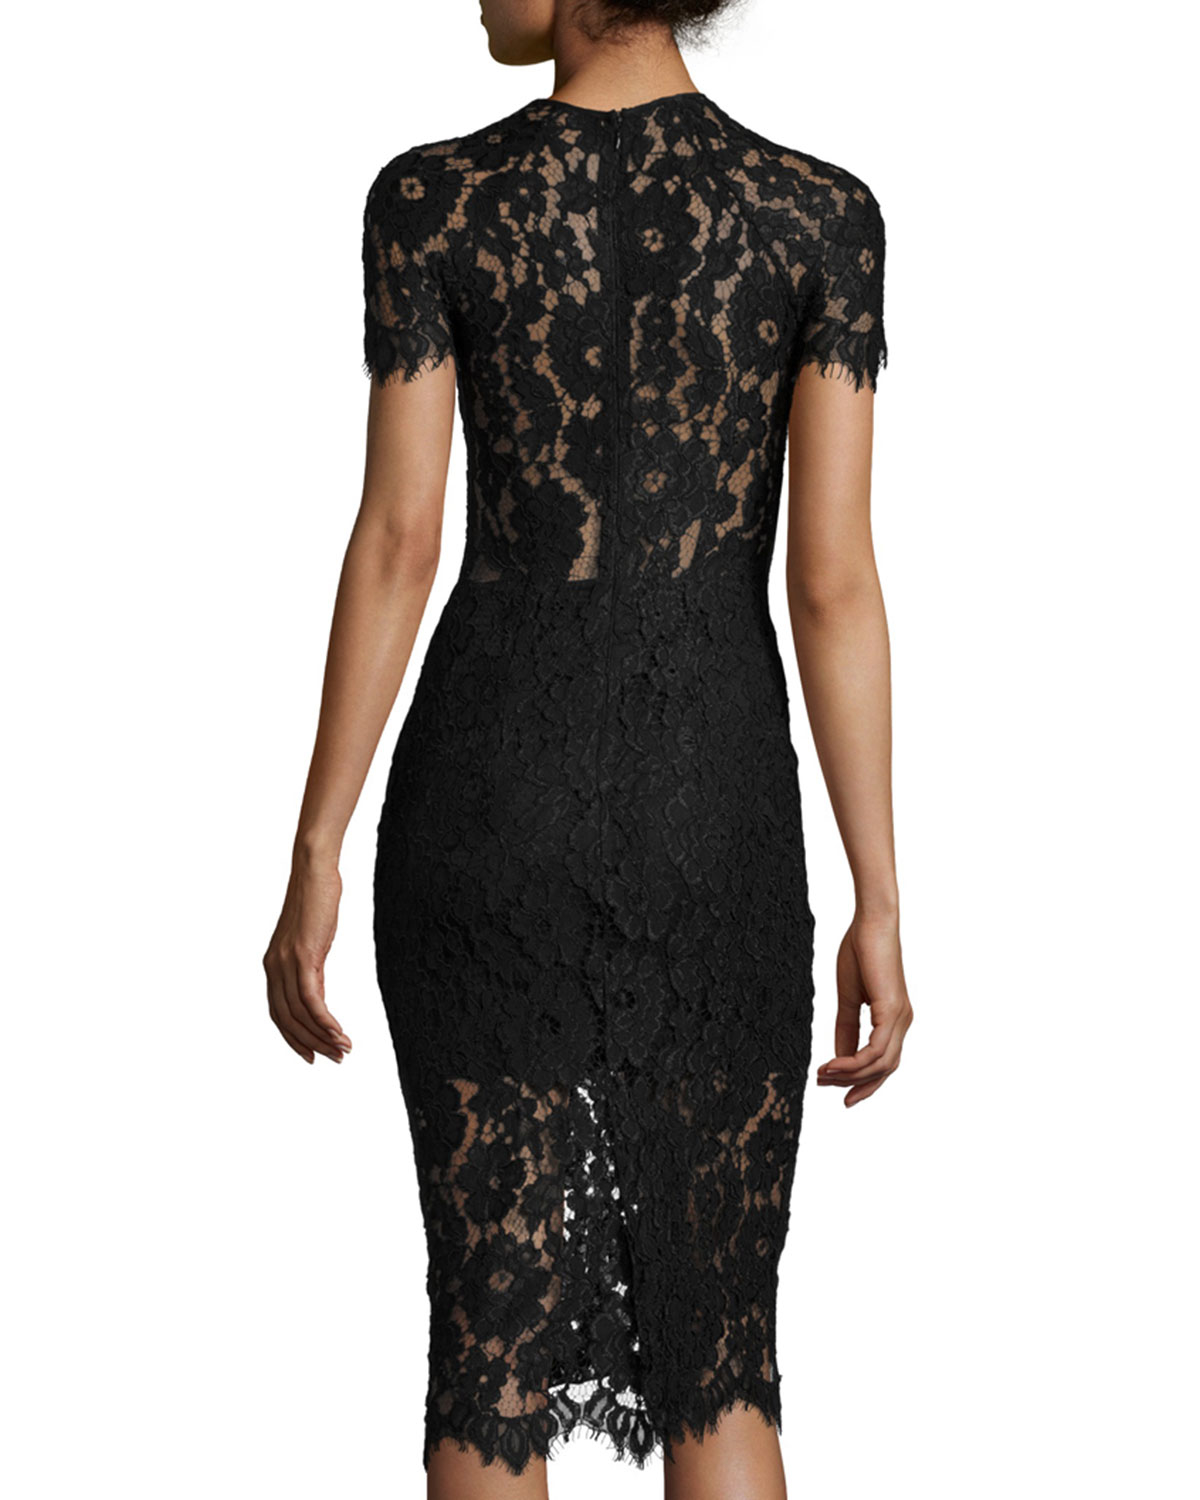 Women's Black Lace Cocktail Dresses